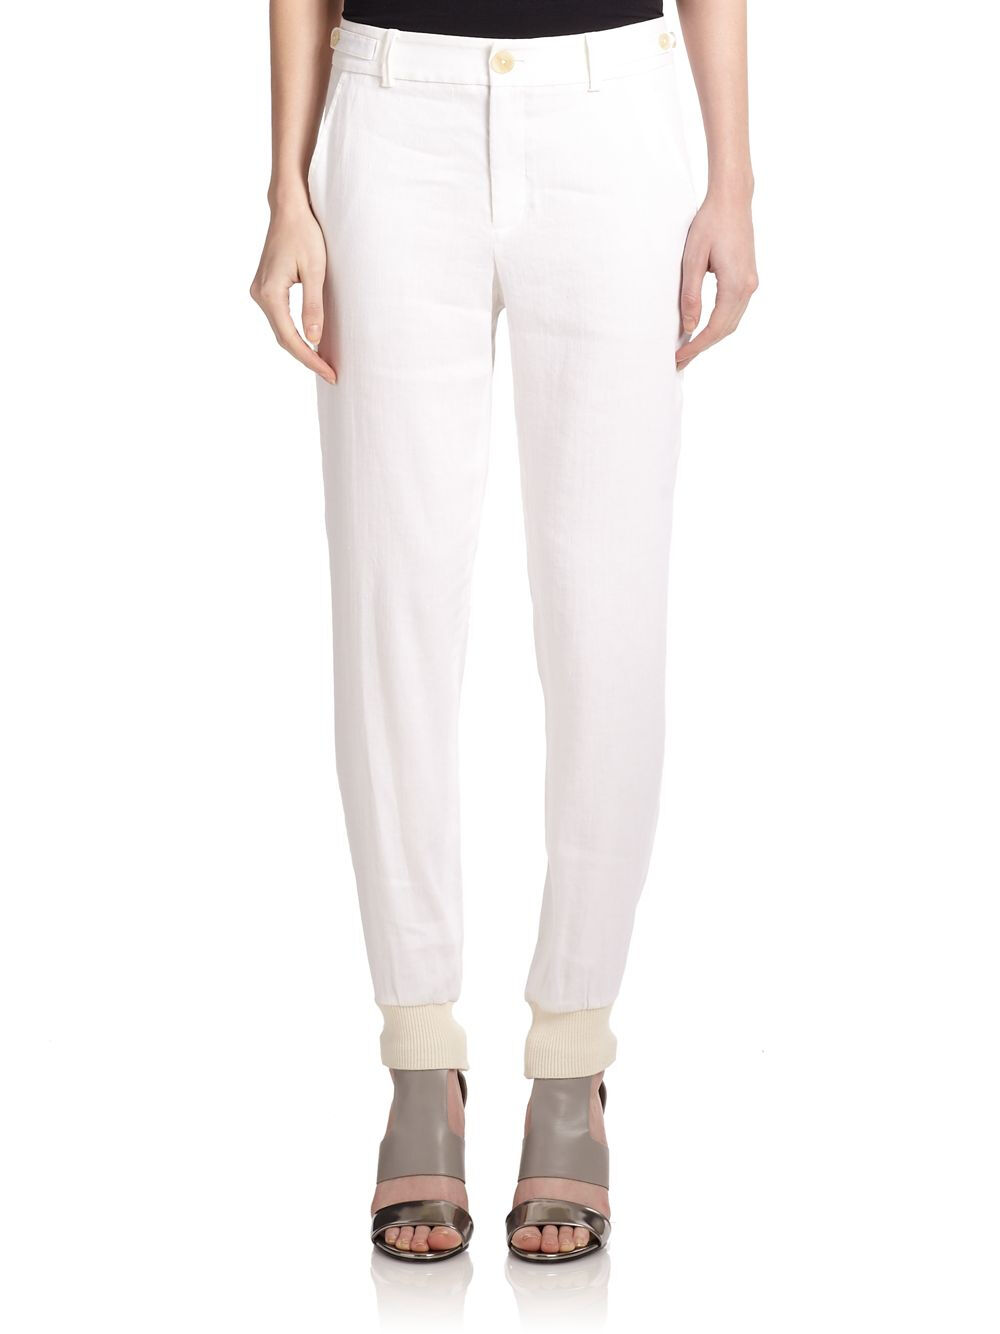 NWT  295 Vince Linen Blend Jogger Pants In White Size 0